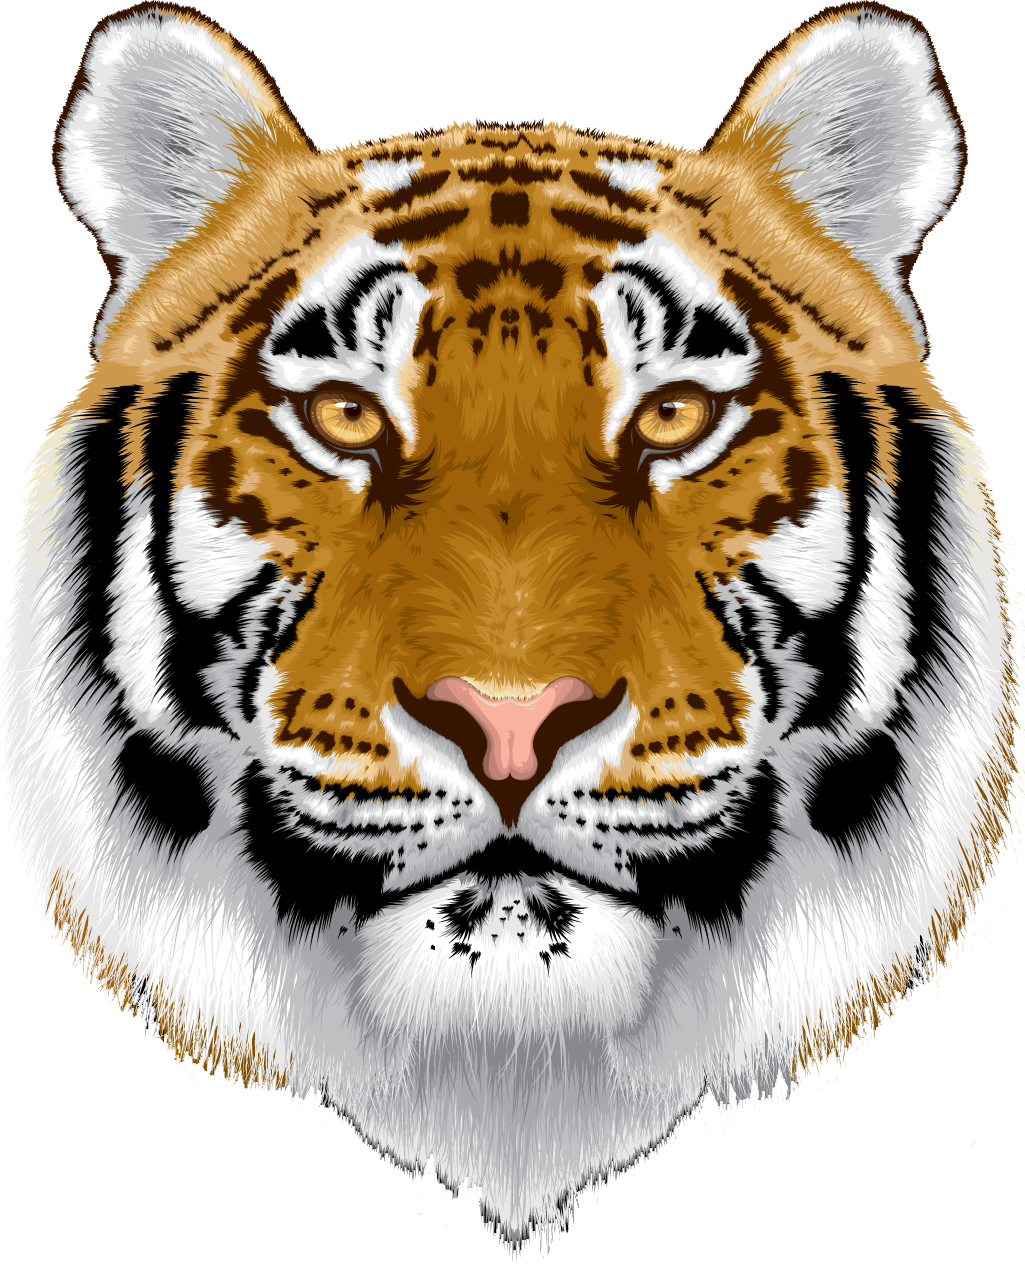 Tiger head png. Photo gallery of